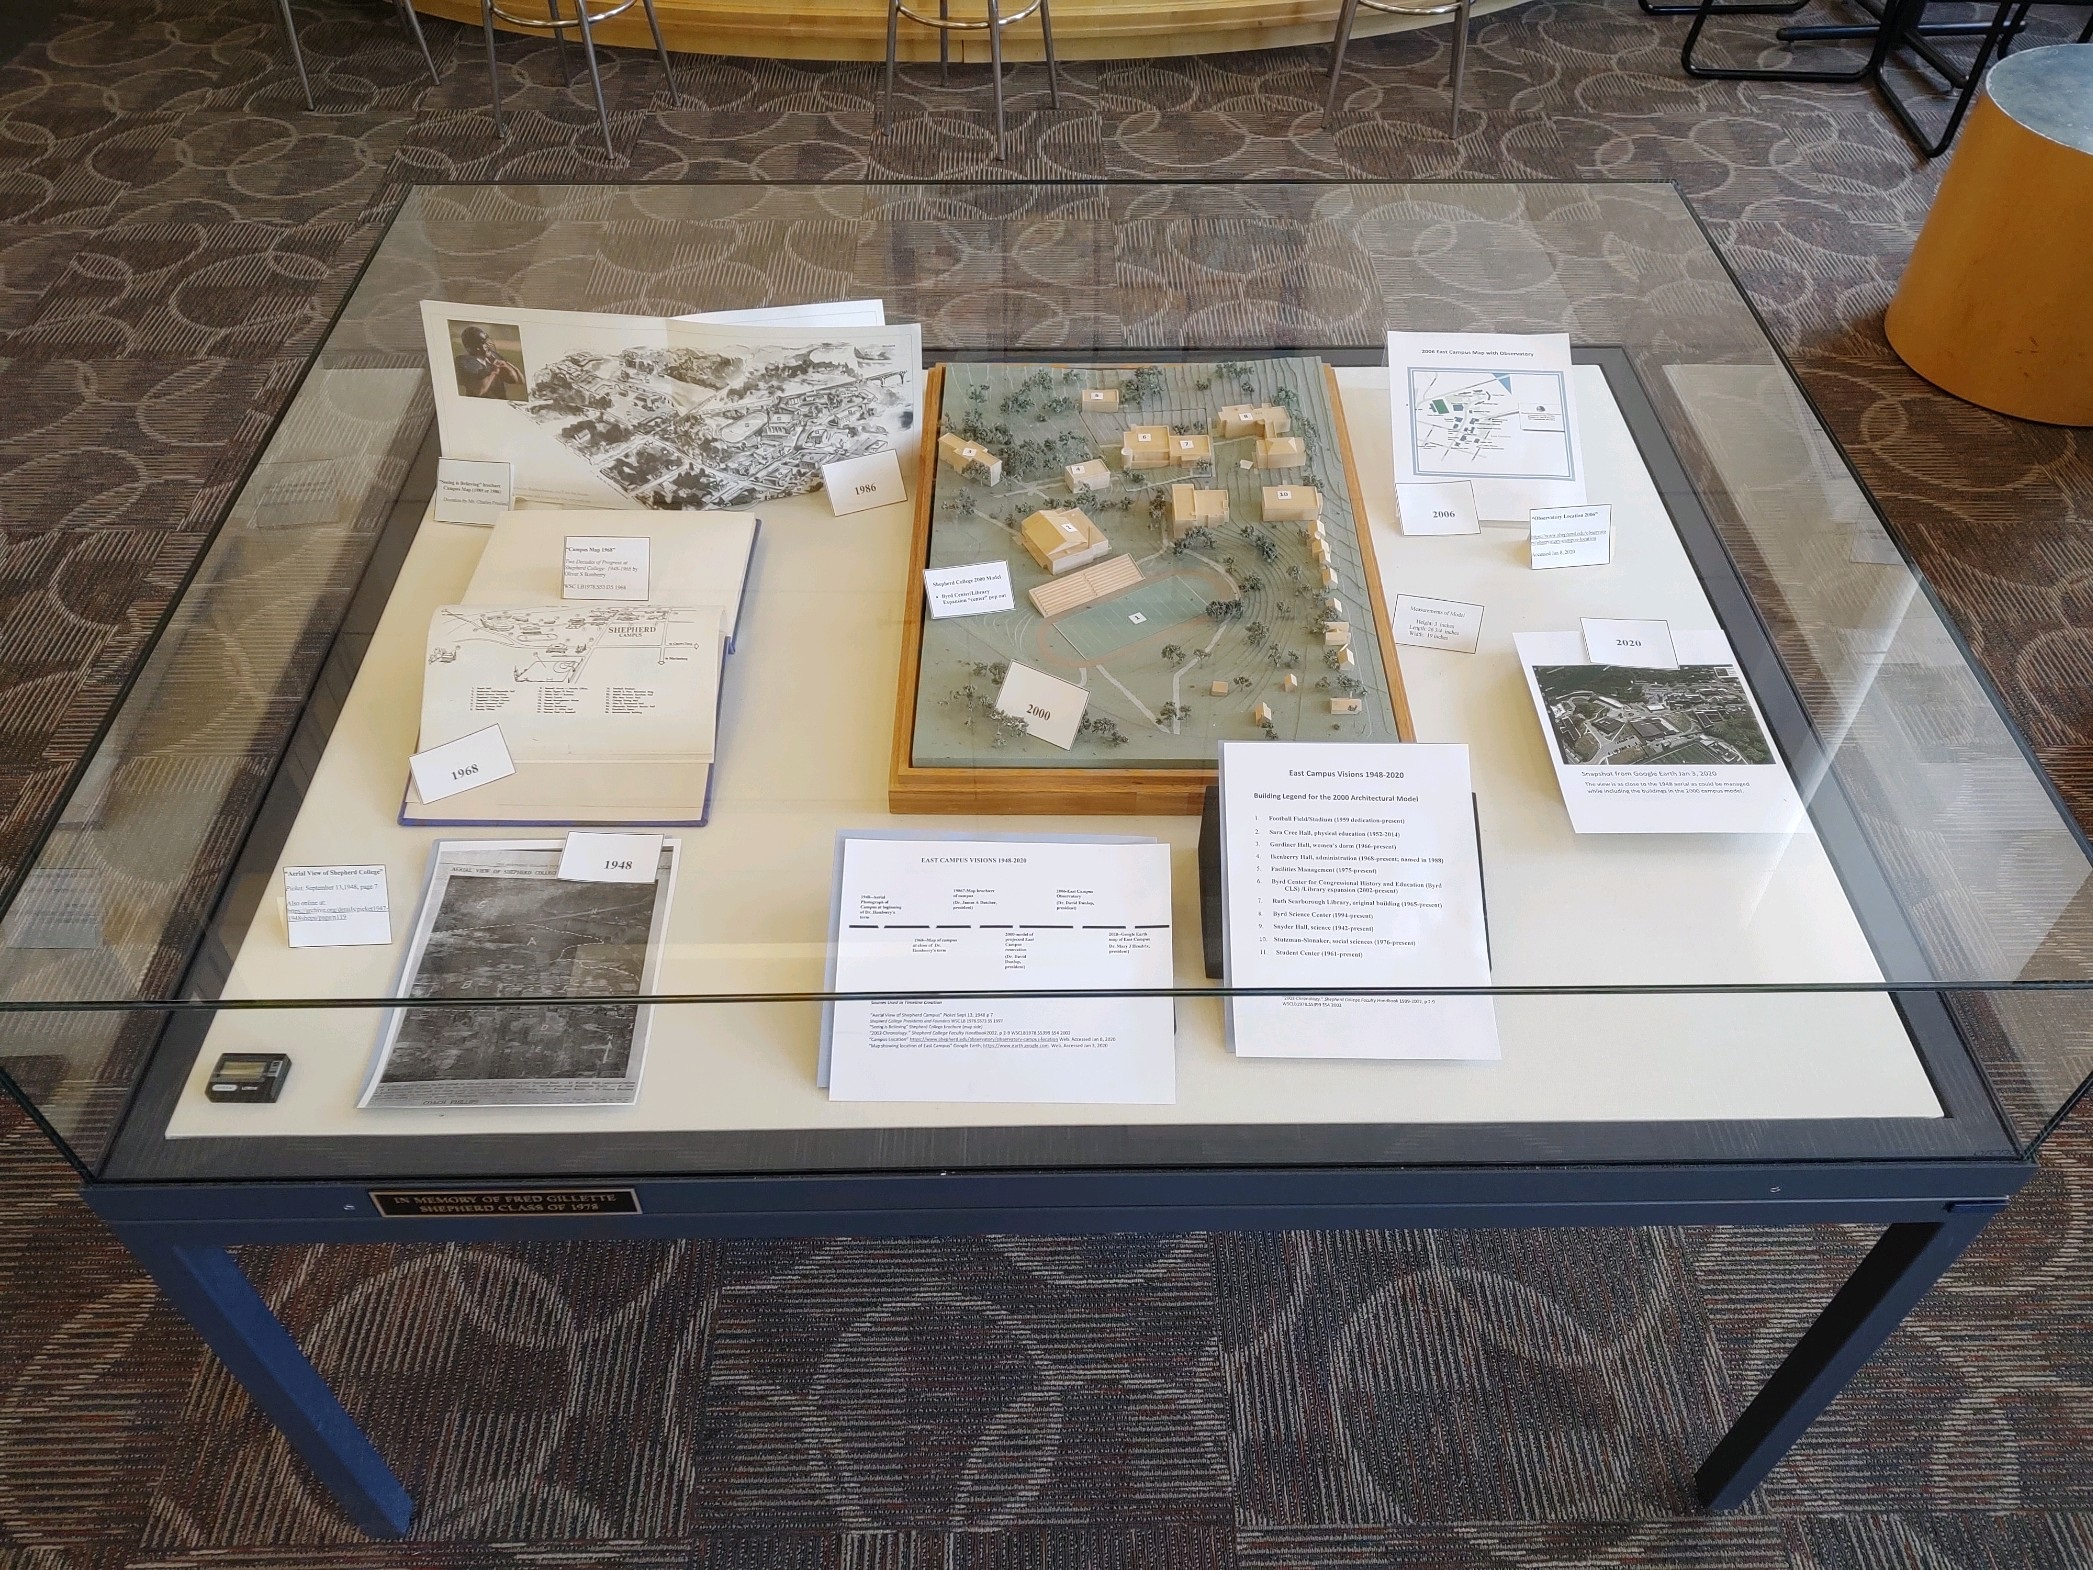 Display titled East Campus Visions 1948-2020, including an architectural model from 2000, several campus maps, an aerial photograph, and a Google Earth snapshot